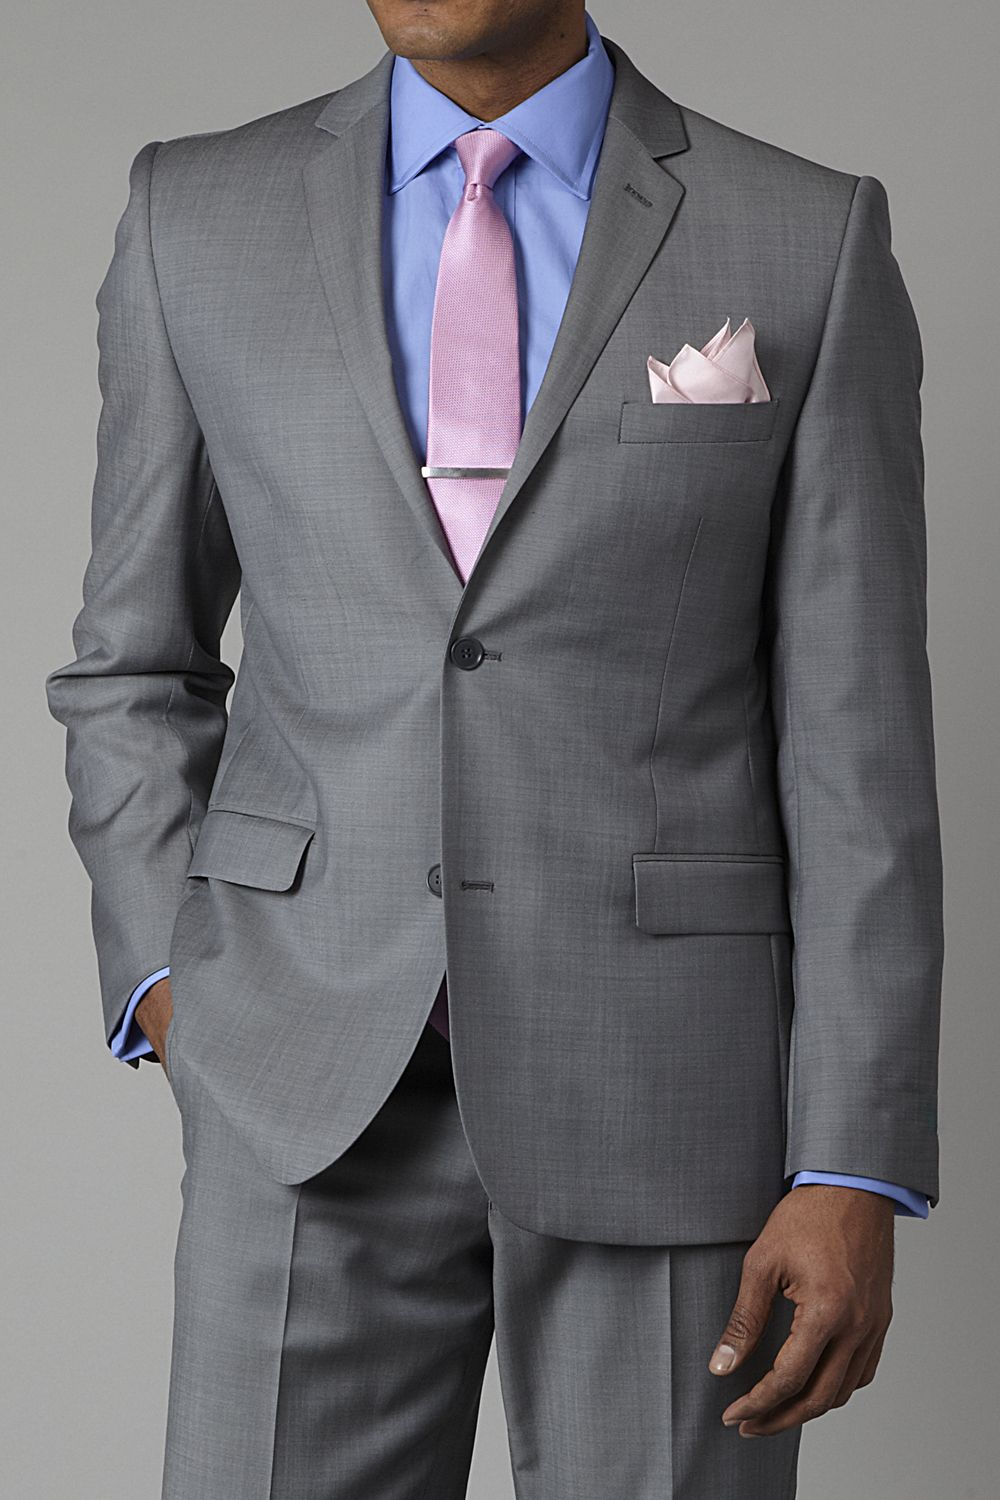 Grey Suit, Light Blue Shirt, Pink Tie